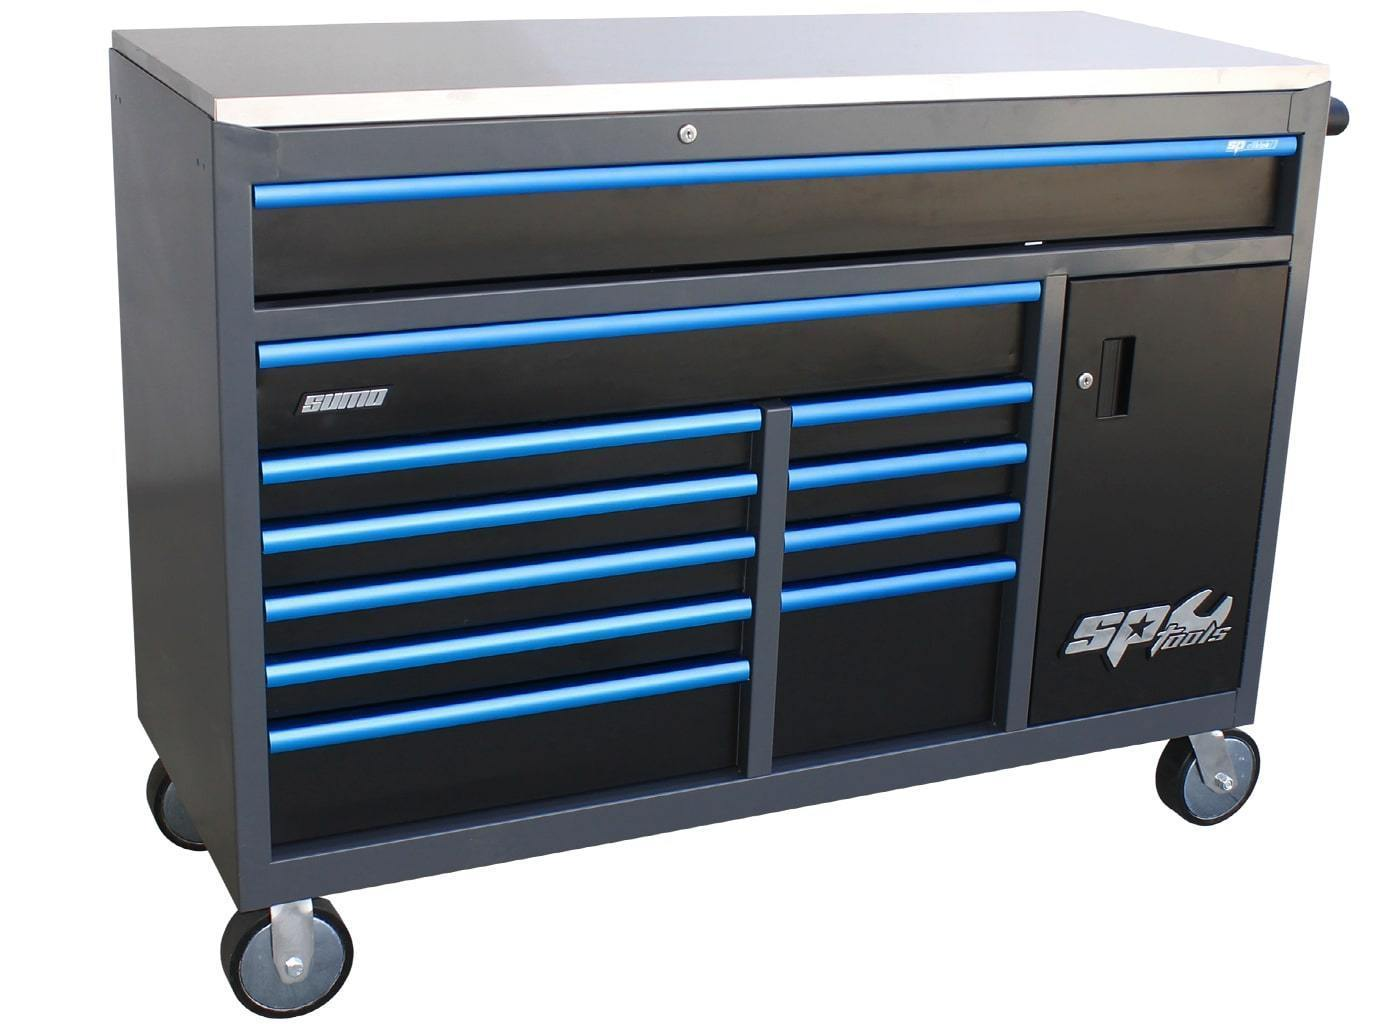 sumo-series-roller-cabinet-with-power-tool-cupboard-11-drawer-diamond-black-blue-handles